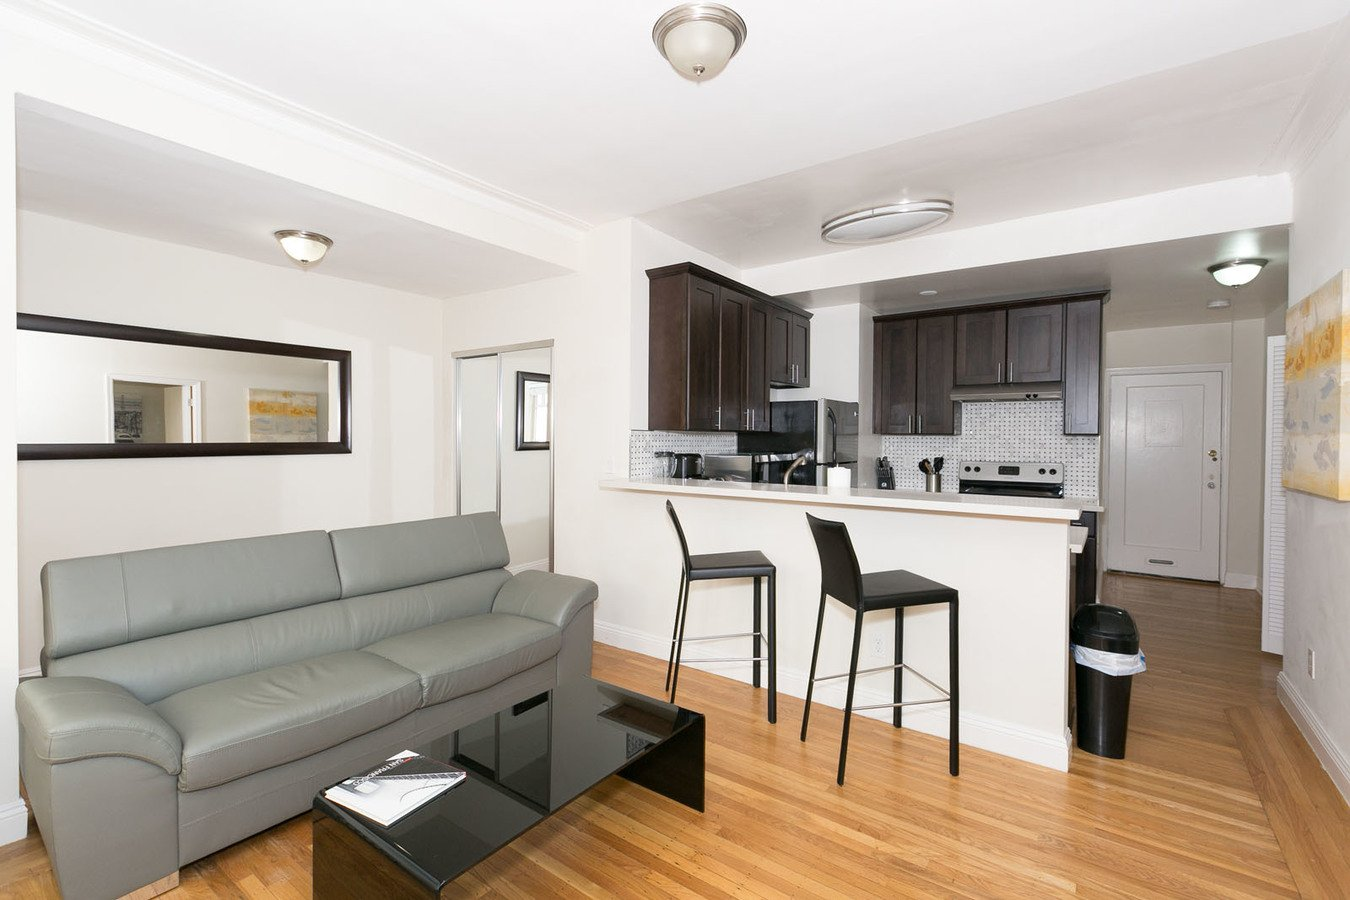 1 Bedroom 1 Bathroom Apartment for rent at 1320-1380 Lombard Apartments & Suites in San Francisco, CA